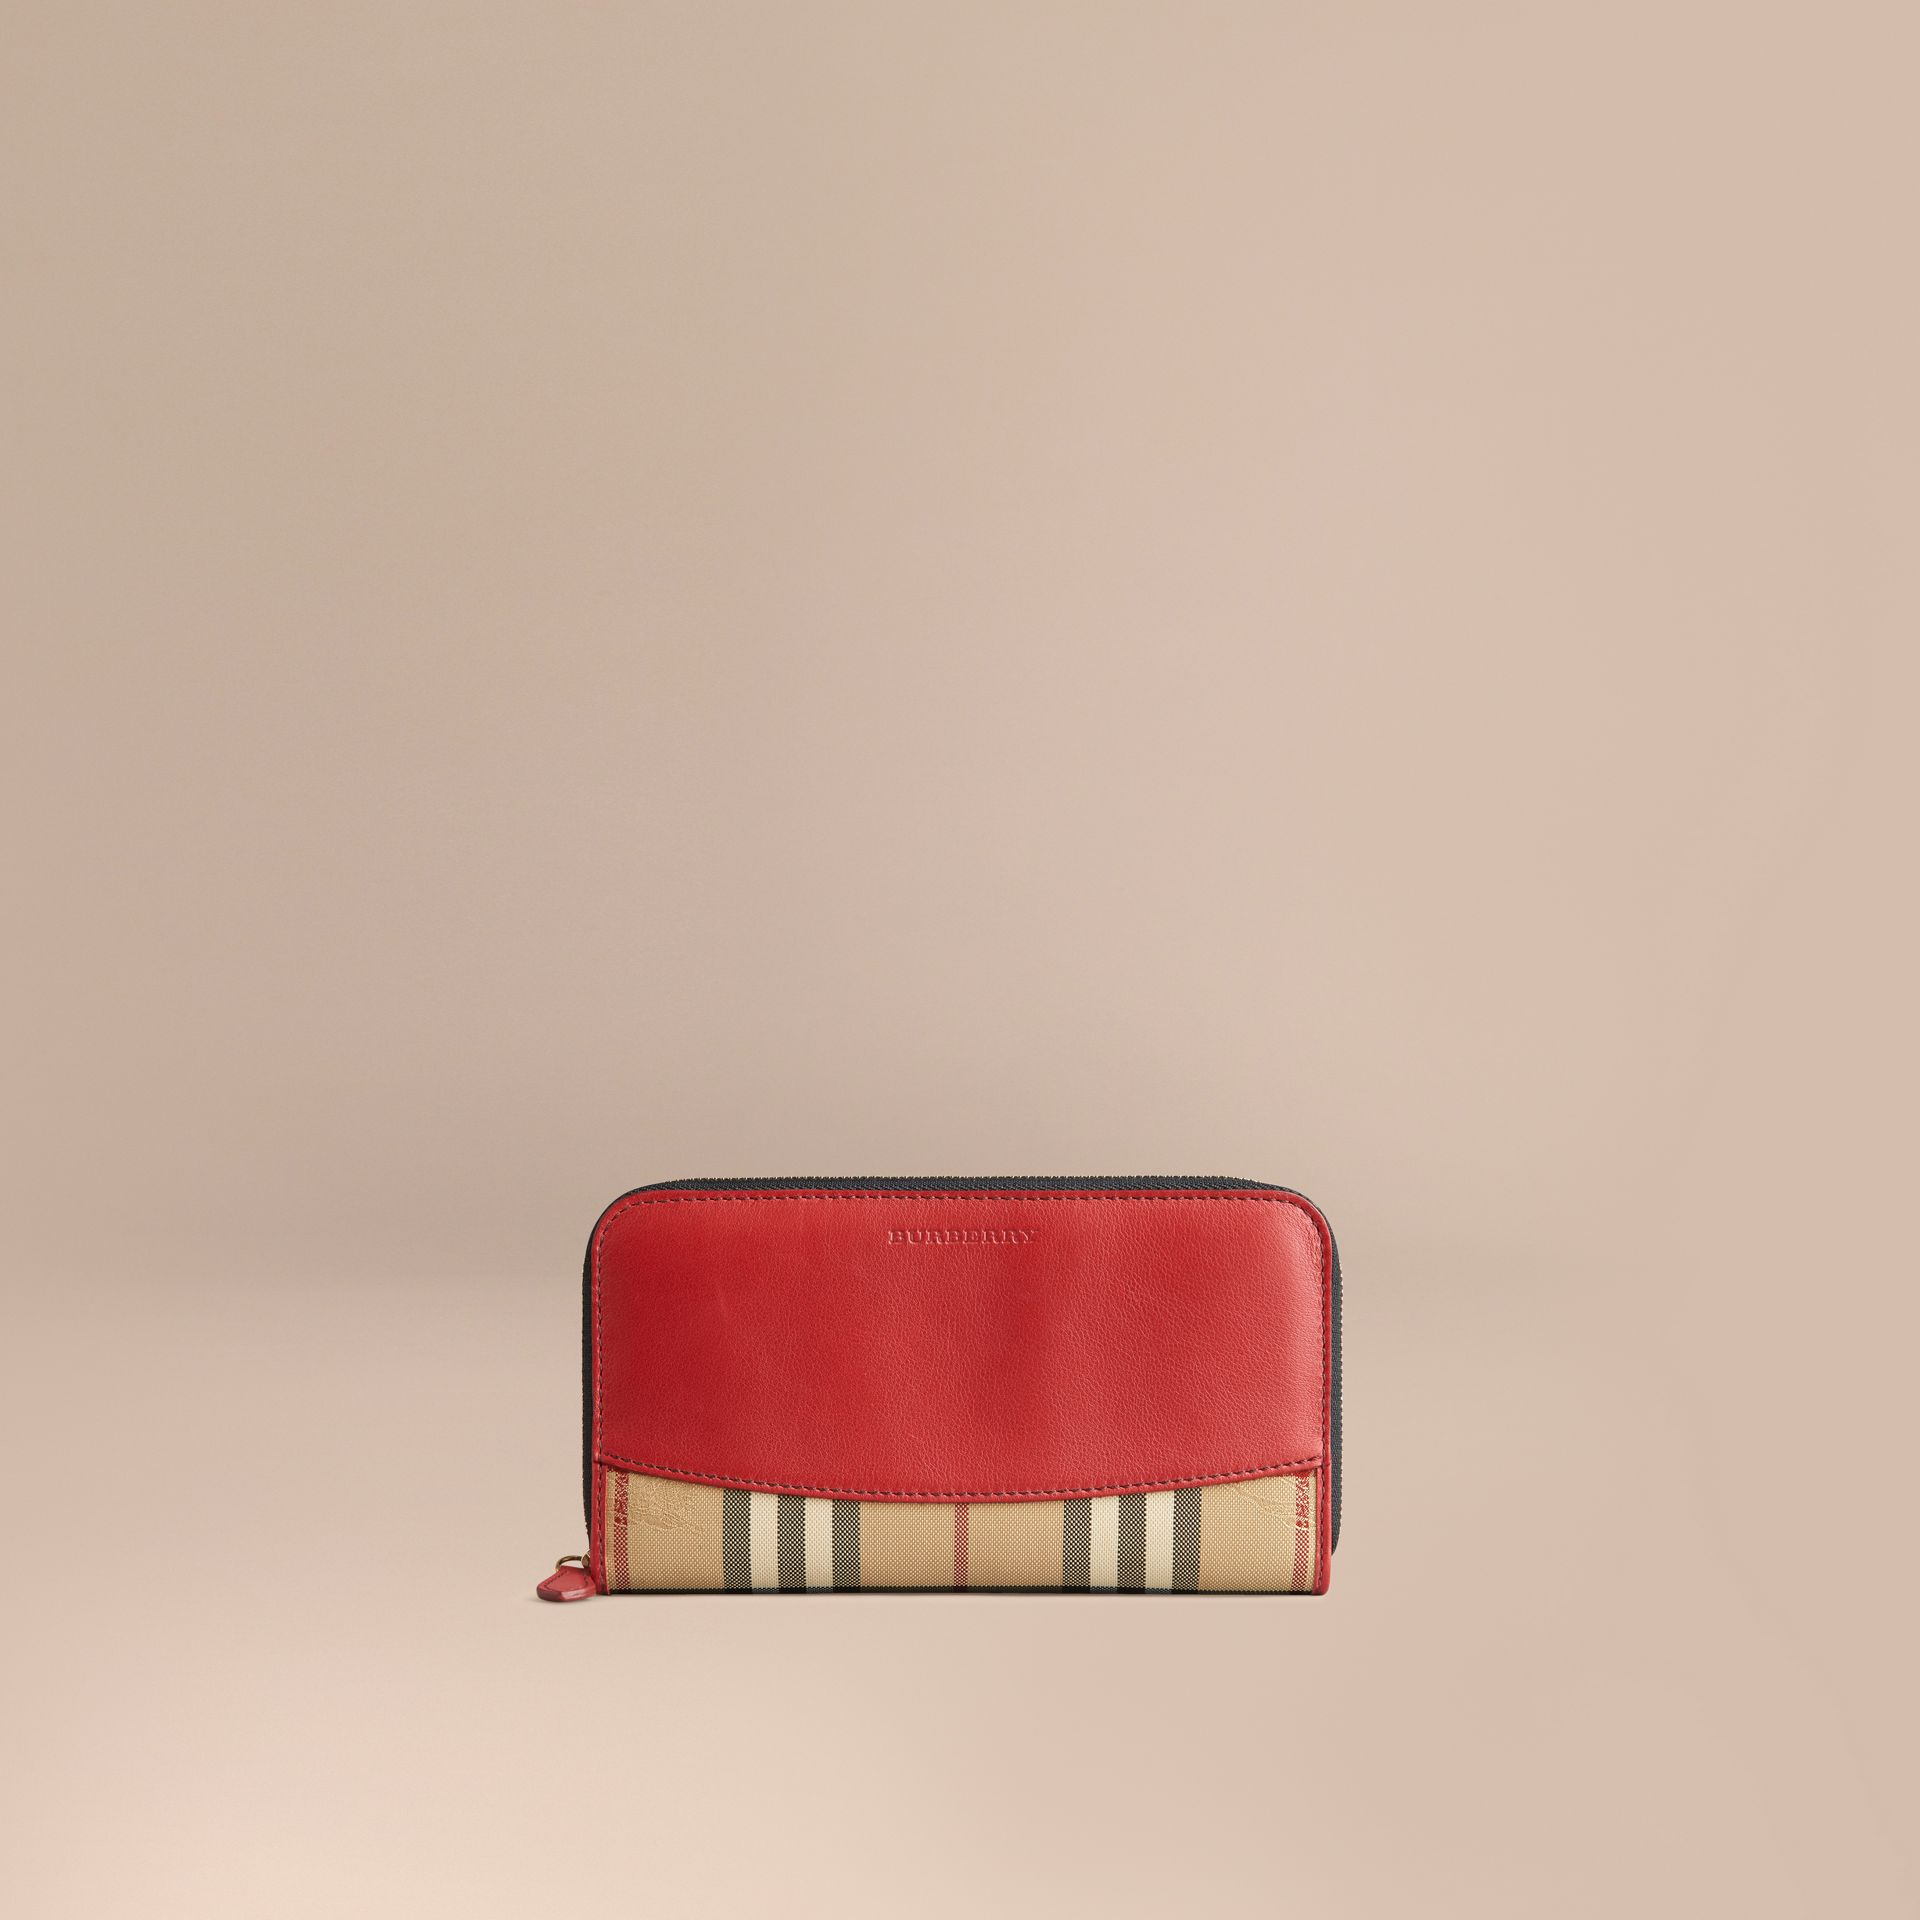 Horseferry Check and Leather Ziparound Wallet in Parade Red - Women | Burberry - gallery image 1